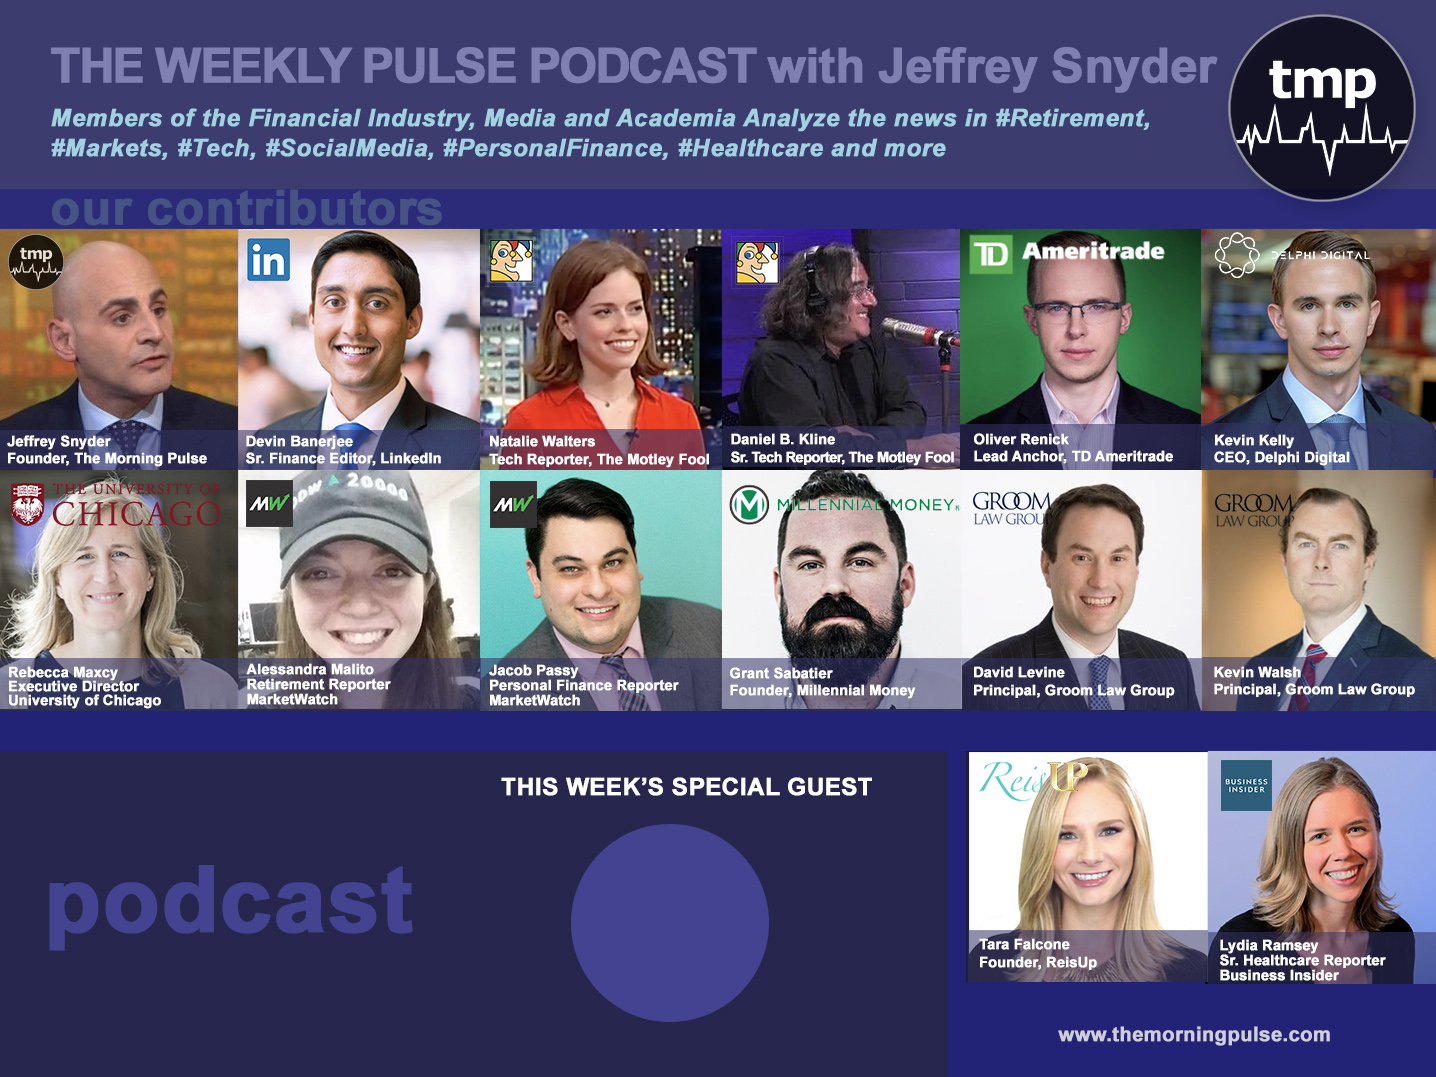 (Podcast) 5/5/2019 In this episode: (1) Road trip: catching up with singer / songwriter Pentley Holmes, (2) lessons from the Milken Conference and the 'Returnship' for Working Mothers, (3) Netflix cancellations increase and Apple Earnings continue to grow, & more.